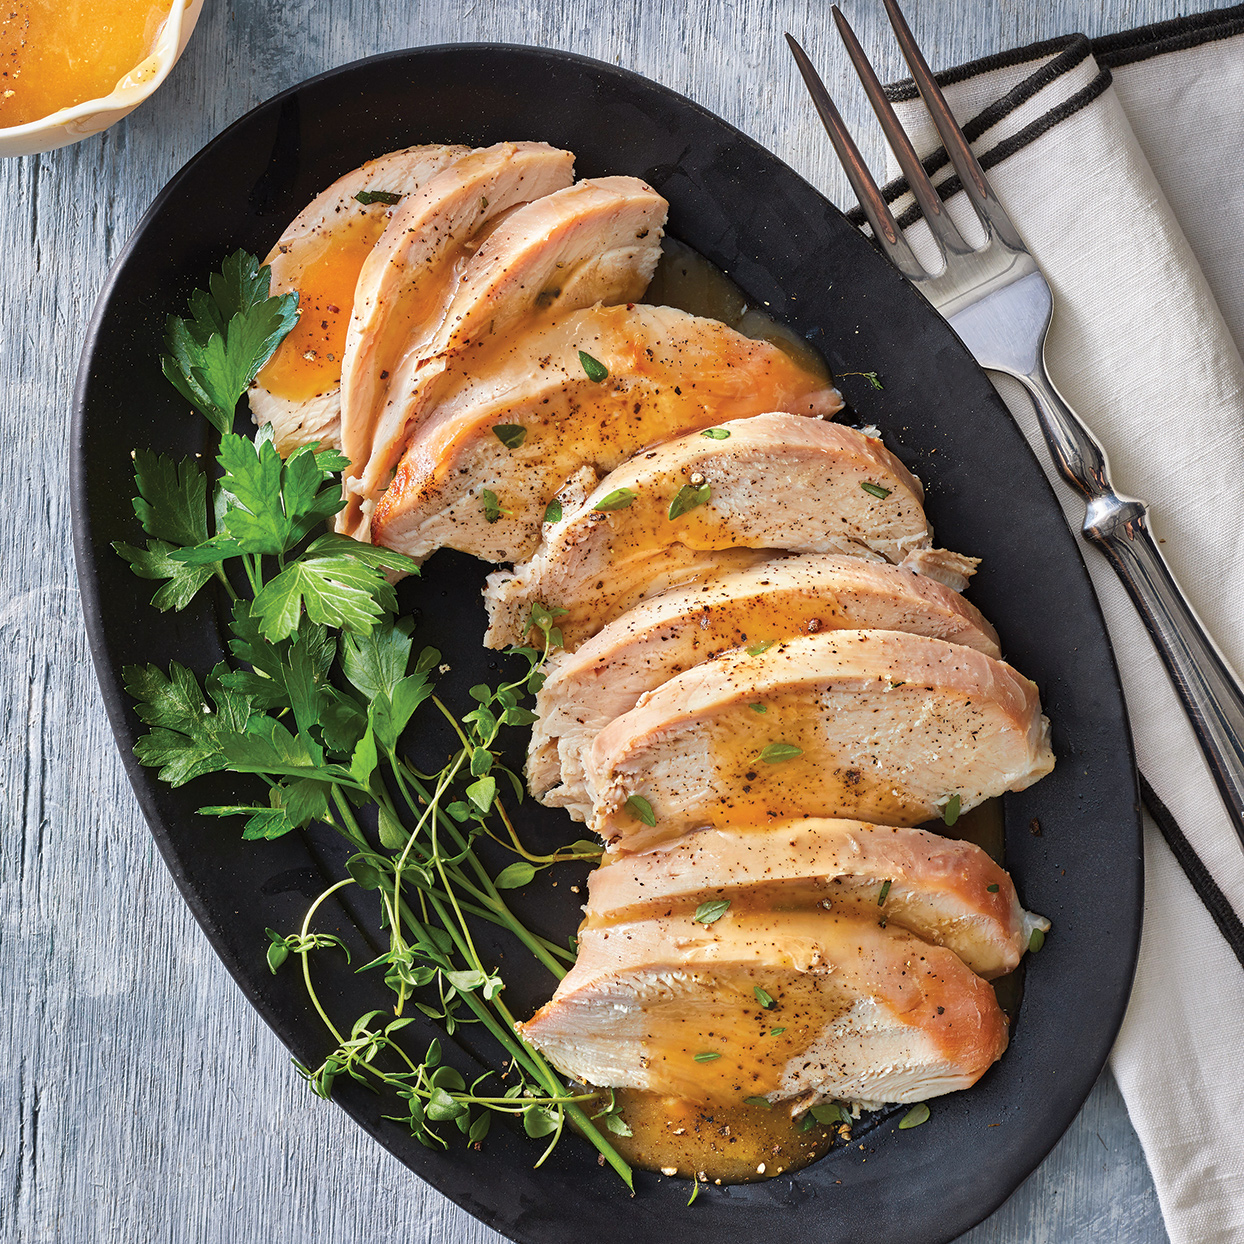 Depart from the expected roasted whole turkey for Thanksgiving dinner, and serve this succulent, slow-cooker turkey breast instead. You'll delight guests with a new dish and also save yourself hands-on time and effort. As a bonus on Turkey Day, this recipe leaves your oven free for stuffing and casseroles. If whole turkey breast isn't available, ask your butcher to cut up a whole turkey and give you the whole turkey breast. To make this recipe gluten free, use gluten-free Dijon. For a pretty presentation, serve with fresh thyme and cilantro sprigs.